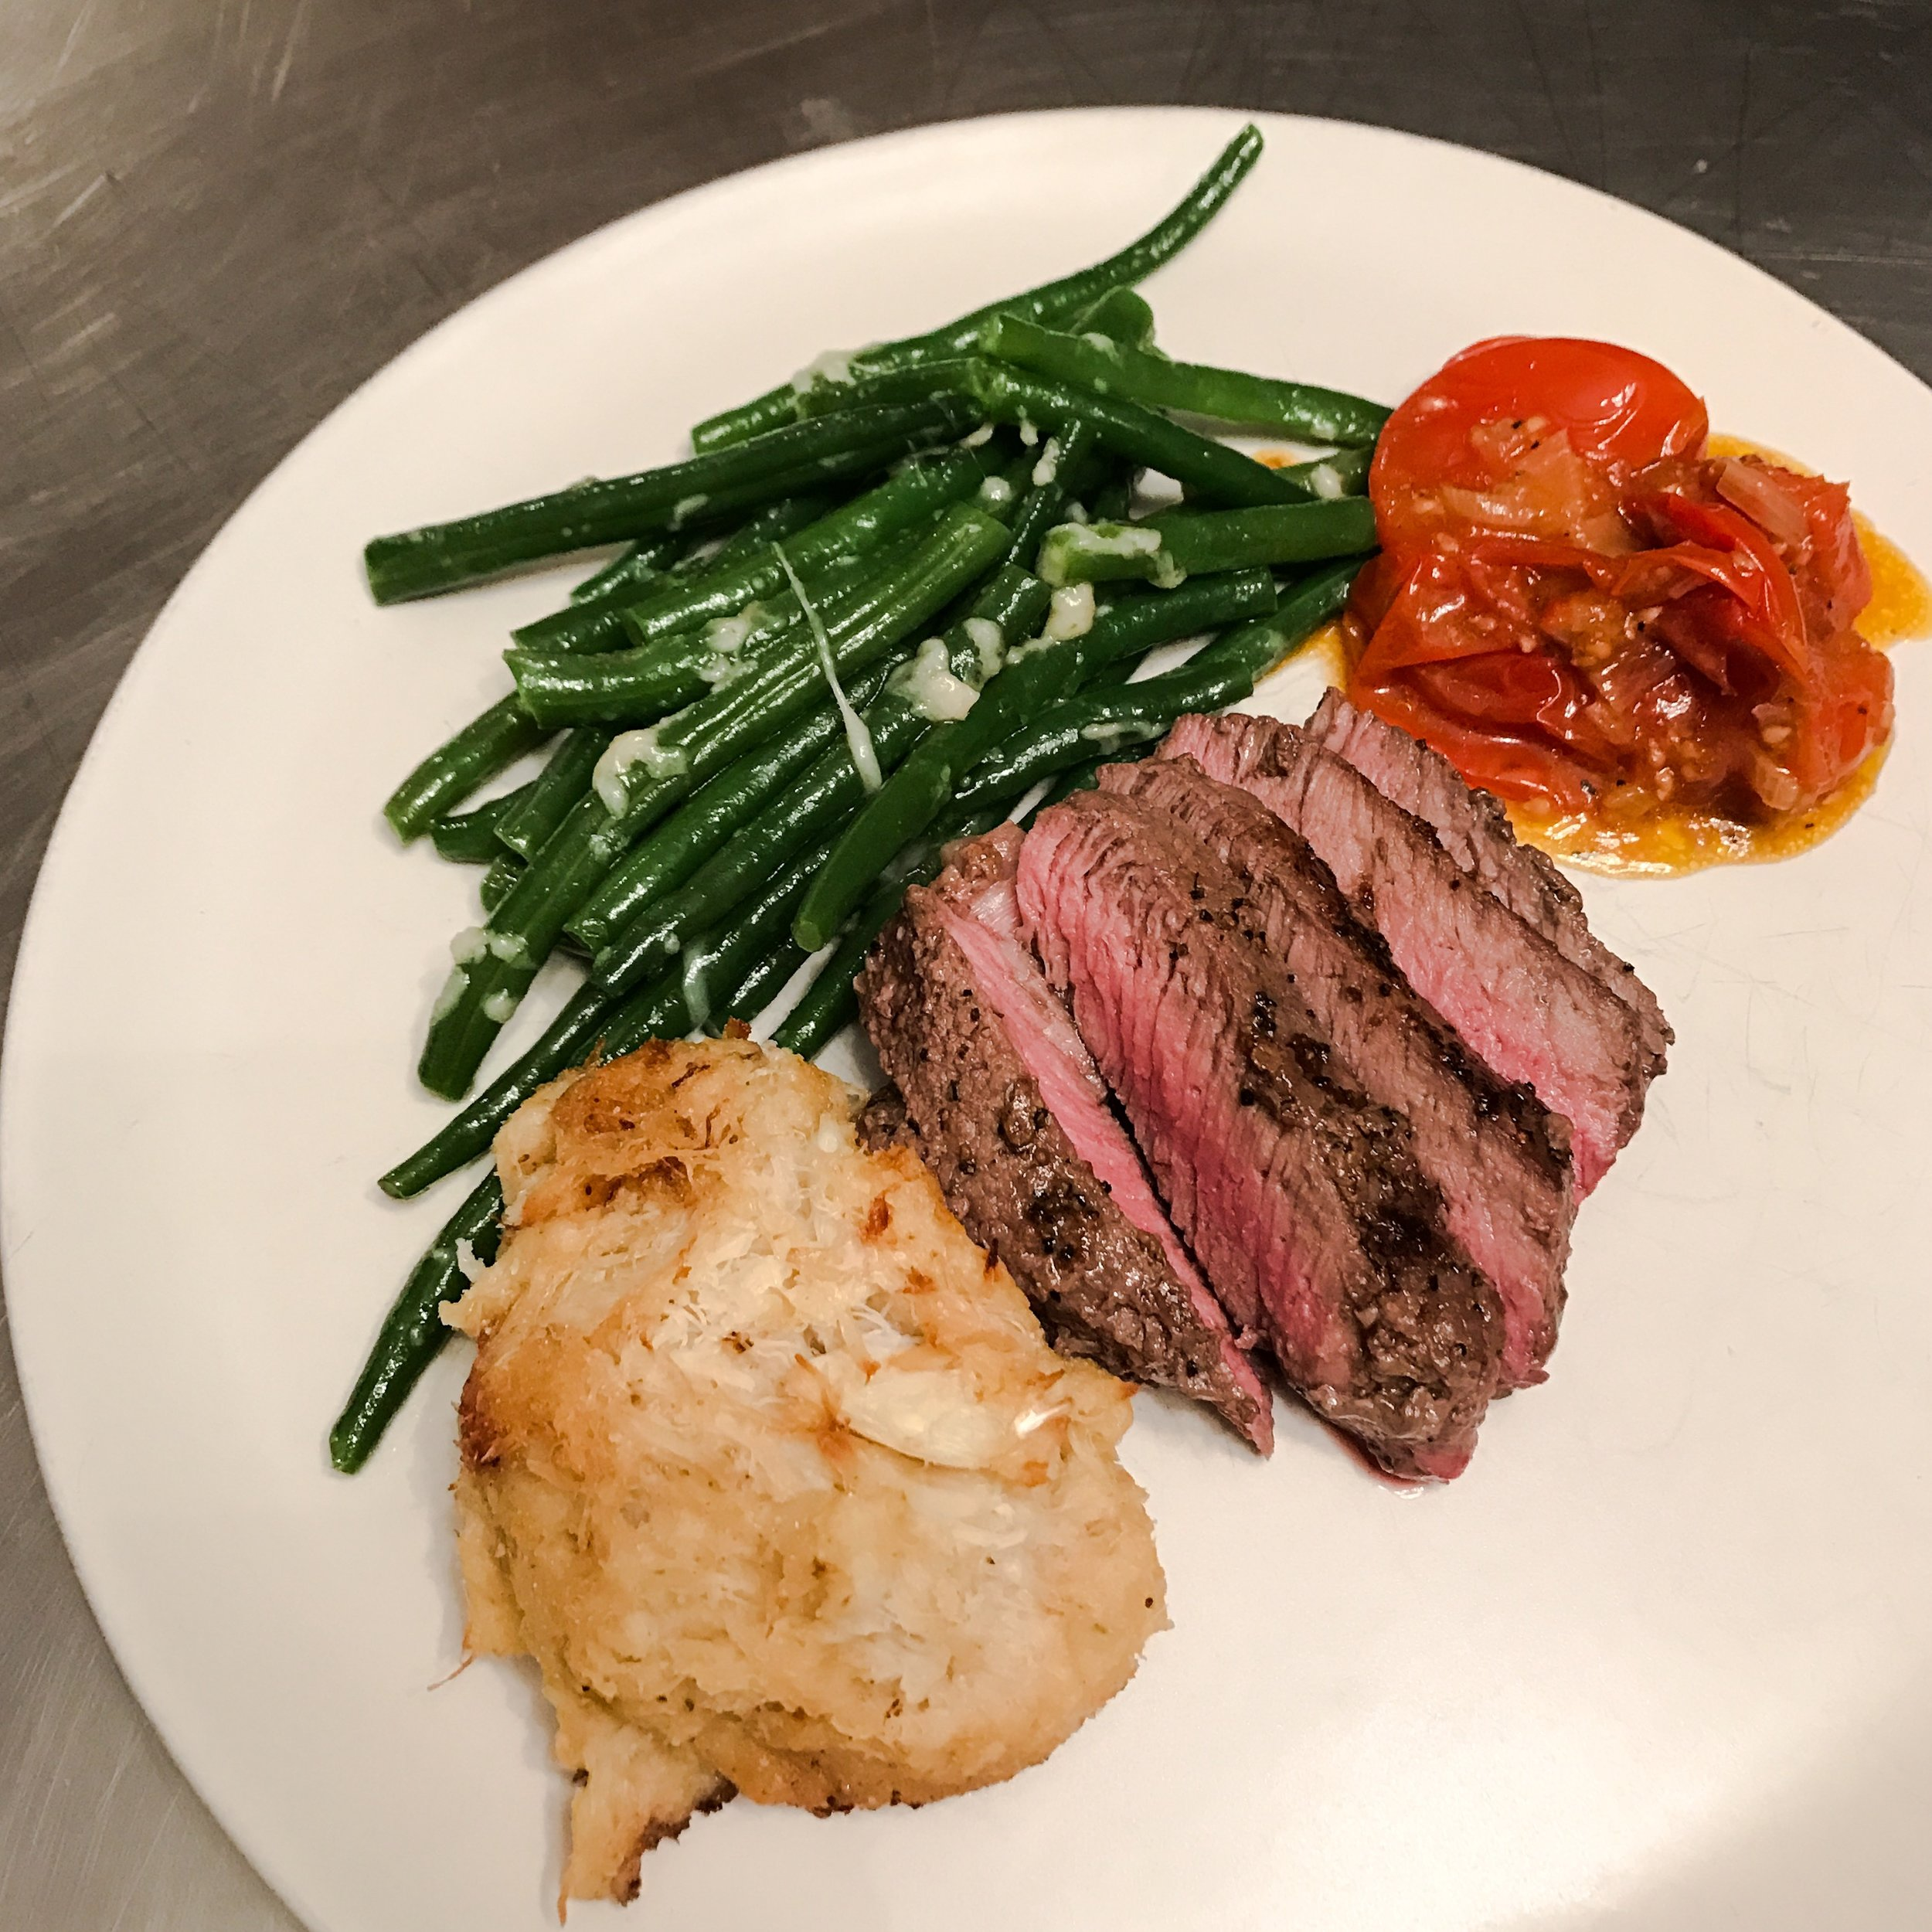 Seared Steak with Crab and Veggies by Jen Fisch via Keto In The City